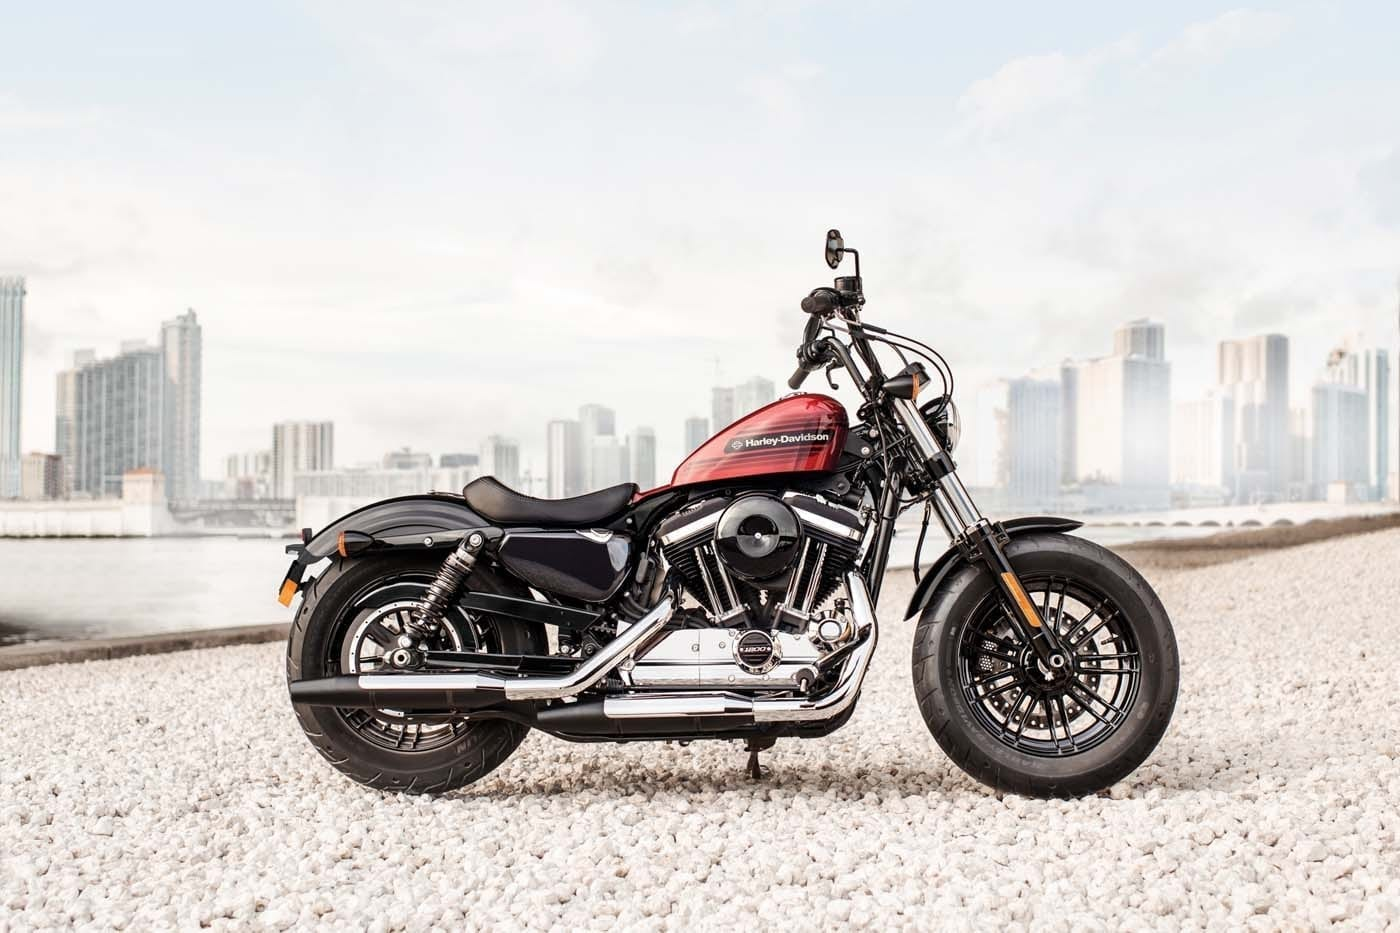 HARLEY-DAVIDSON FORTY-EIGHT SPECIAL AND IRON 1200 SPORTSTERS 17